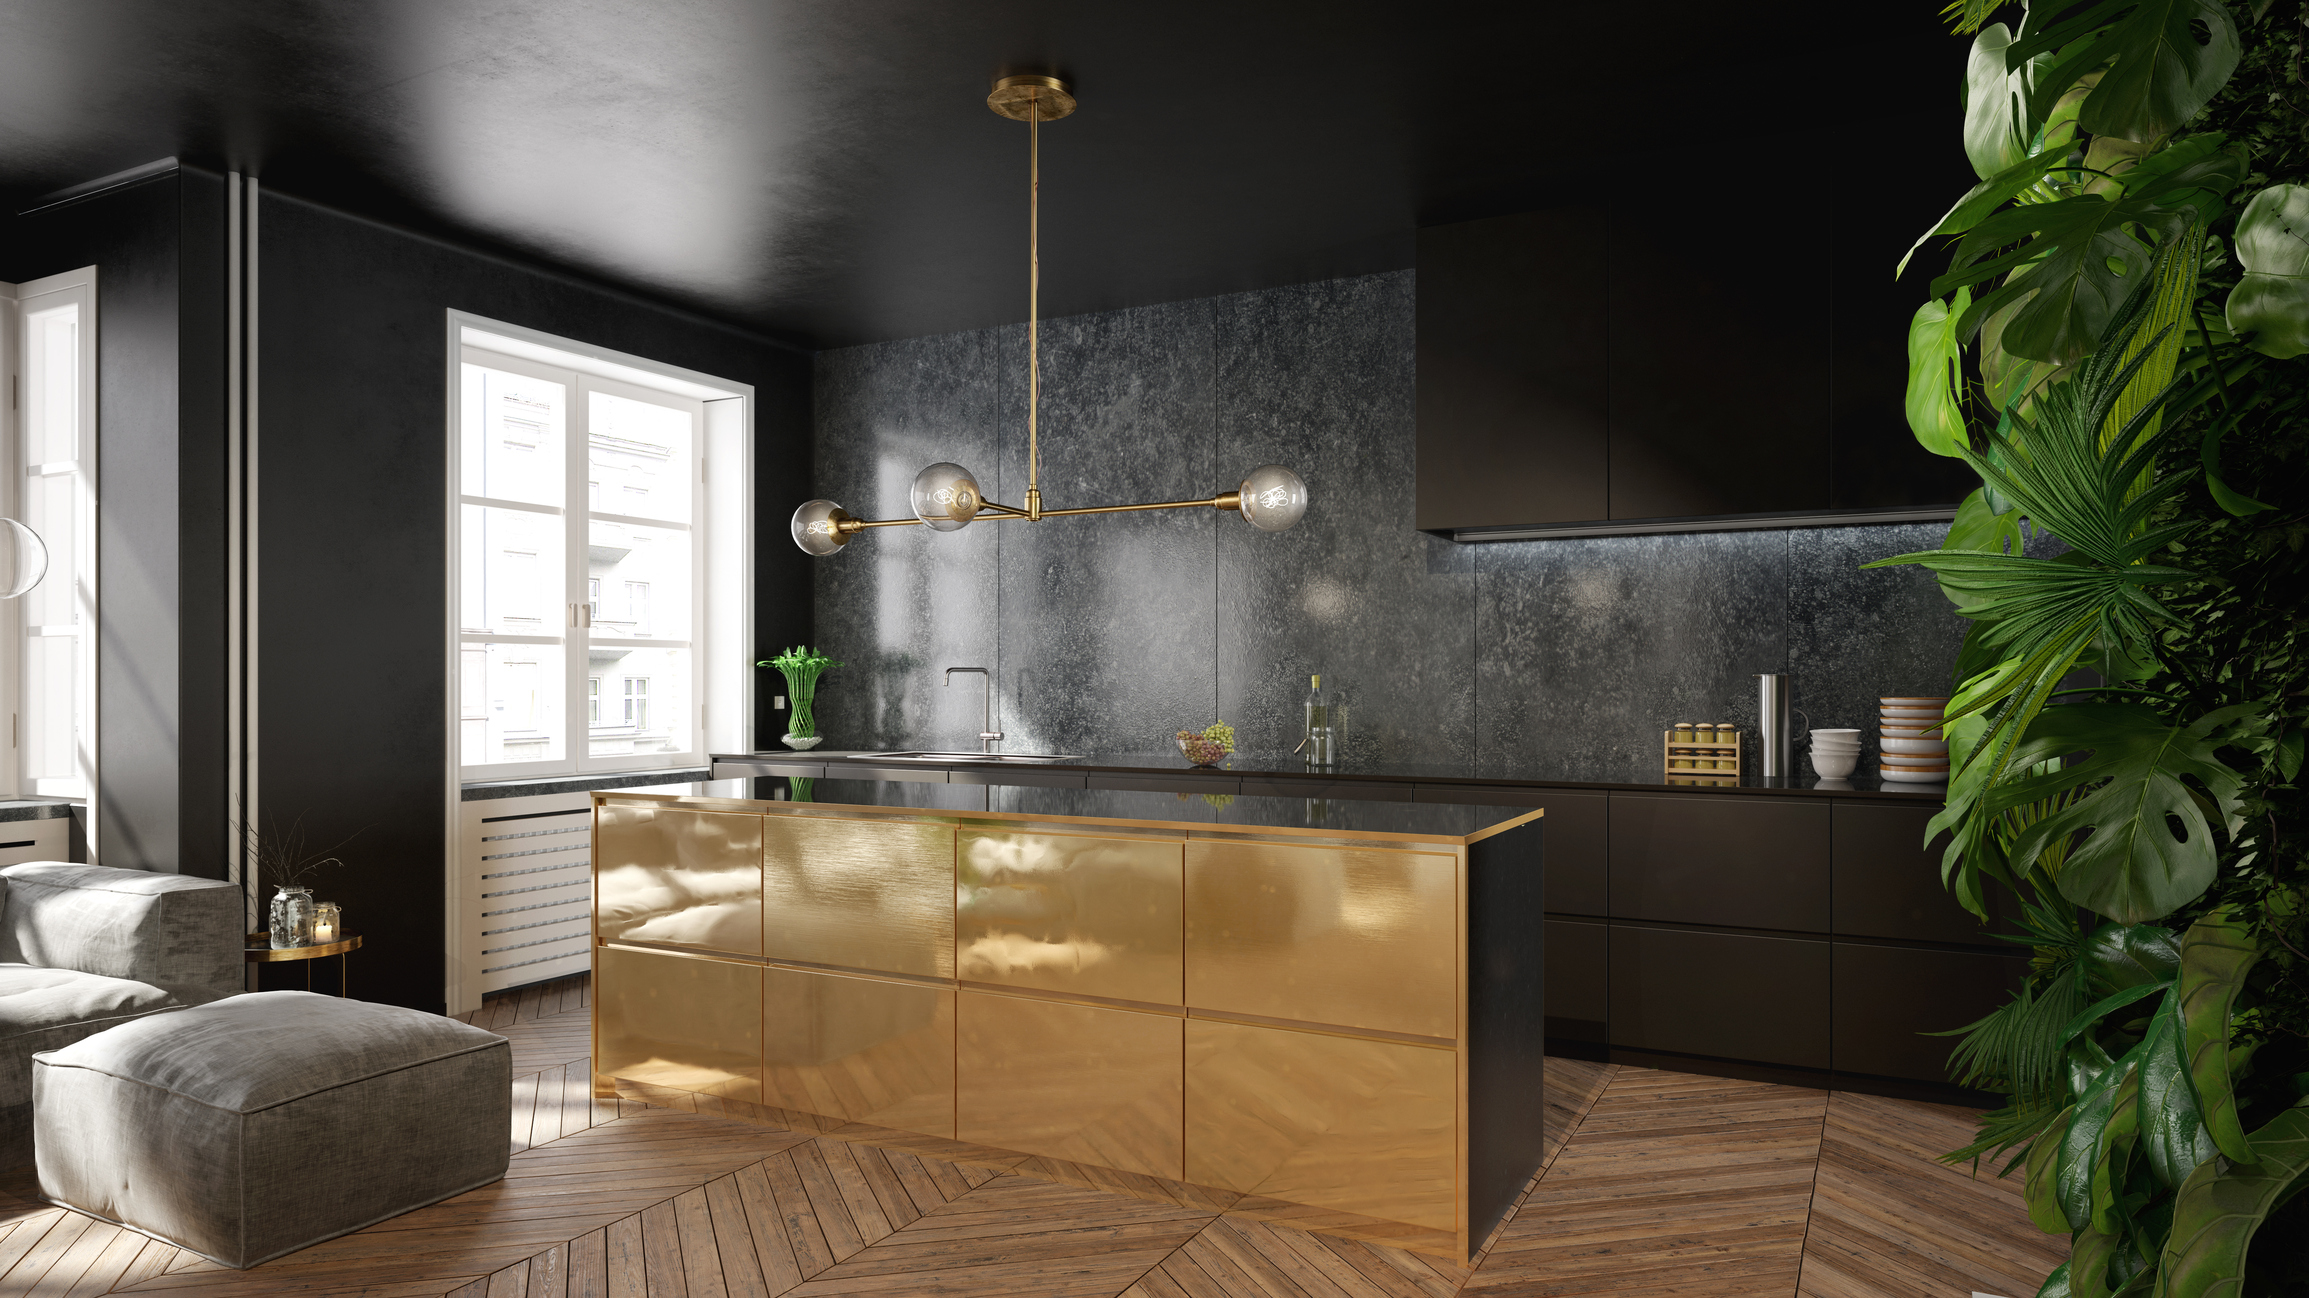 Sustainable architecture - how to combine luxury and eco-friendliness - Modern black and gold kitchen interior design - green architecture - sustainable kitchen designs - energy saving appliances - eco luxury - eco-friendly home design